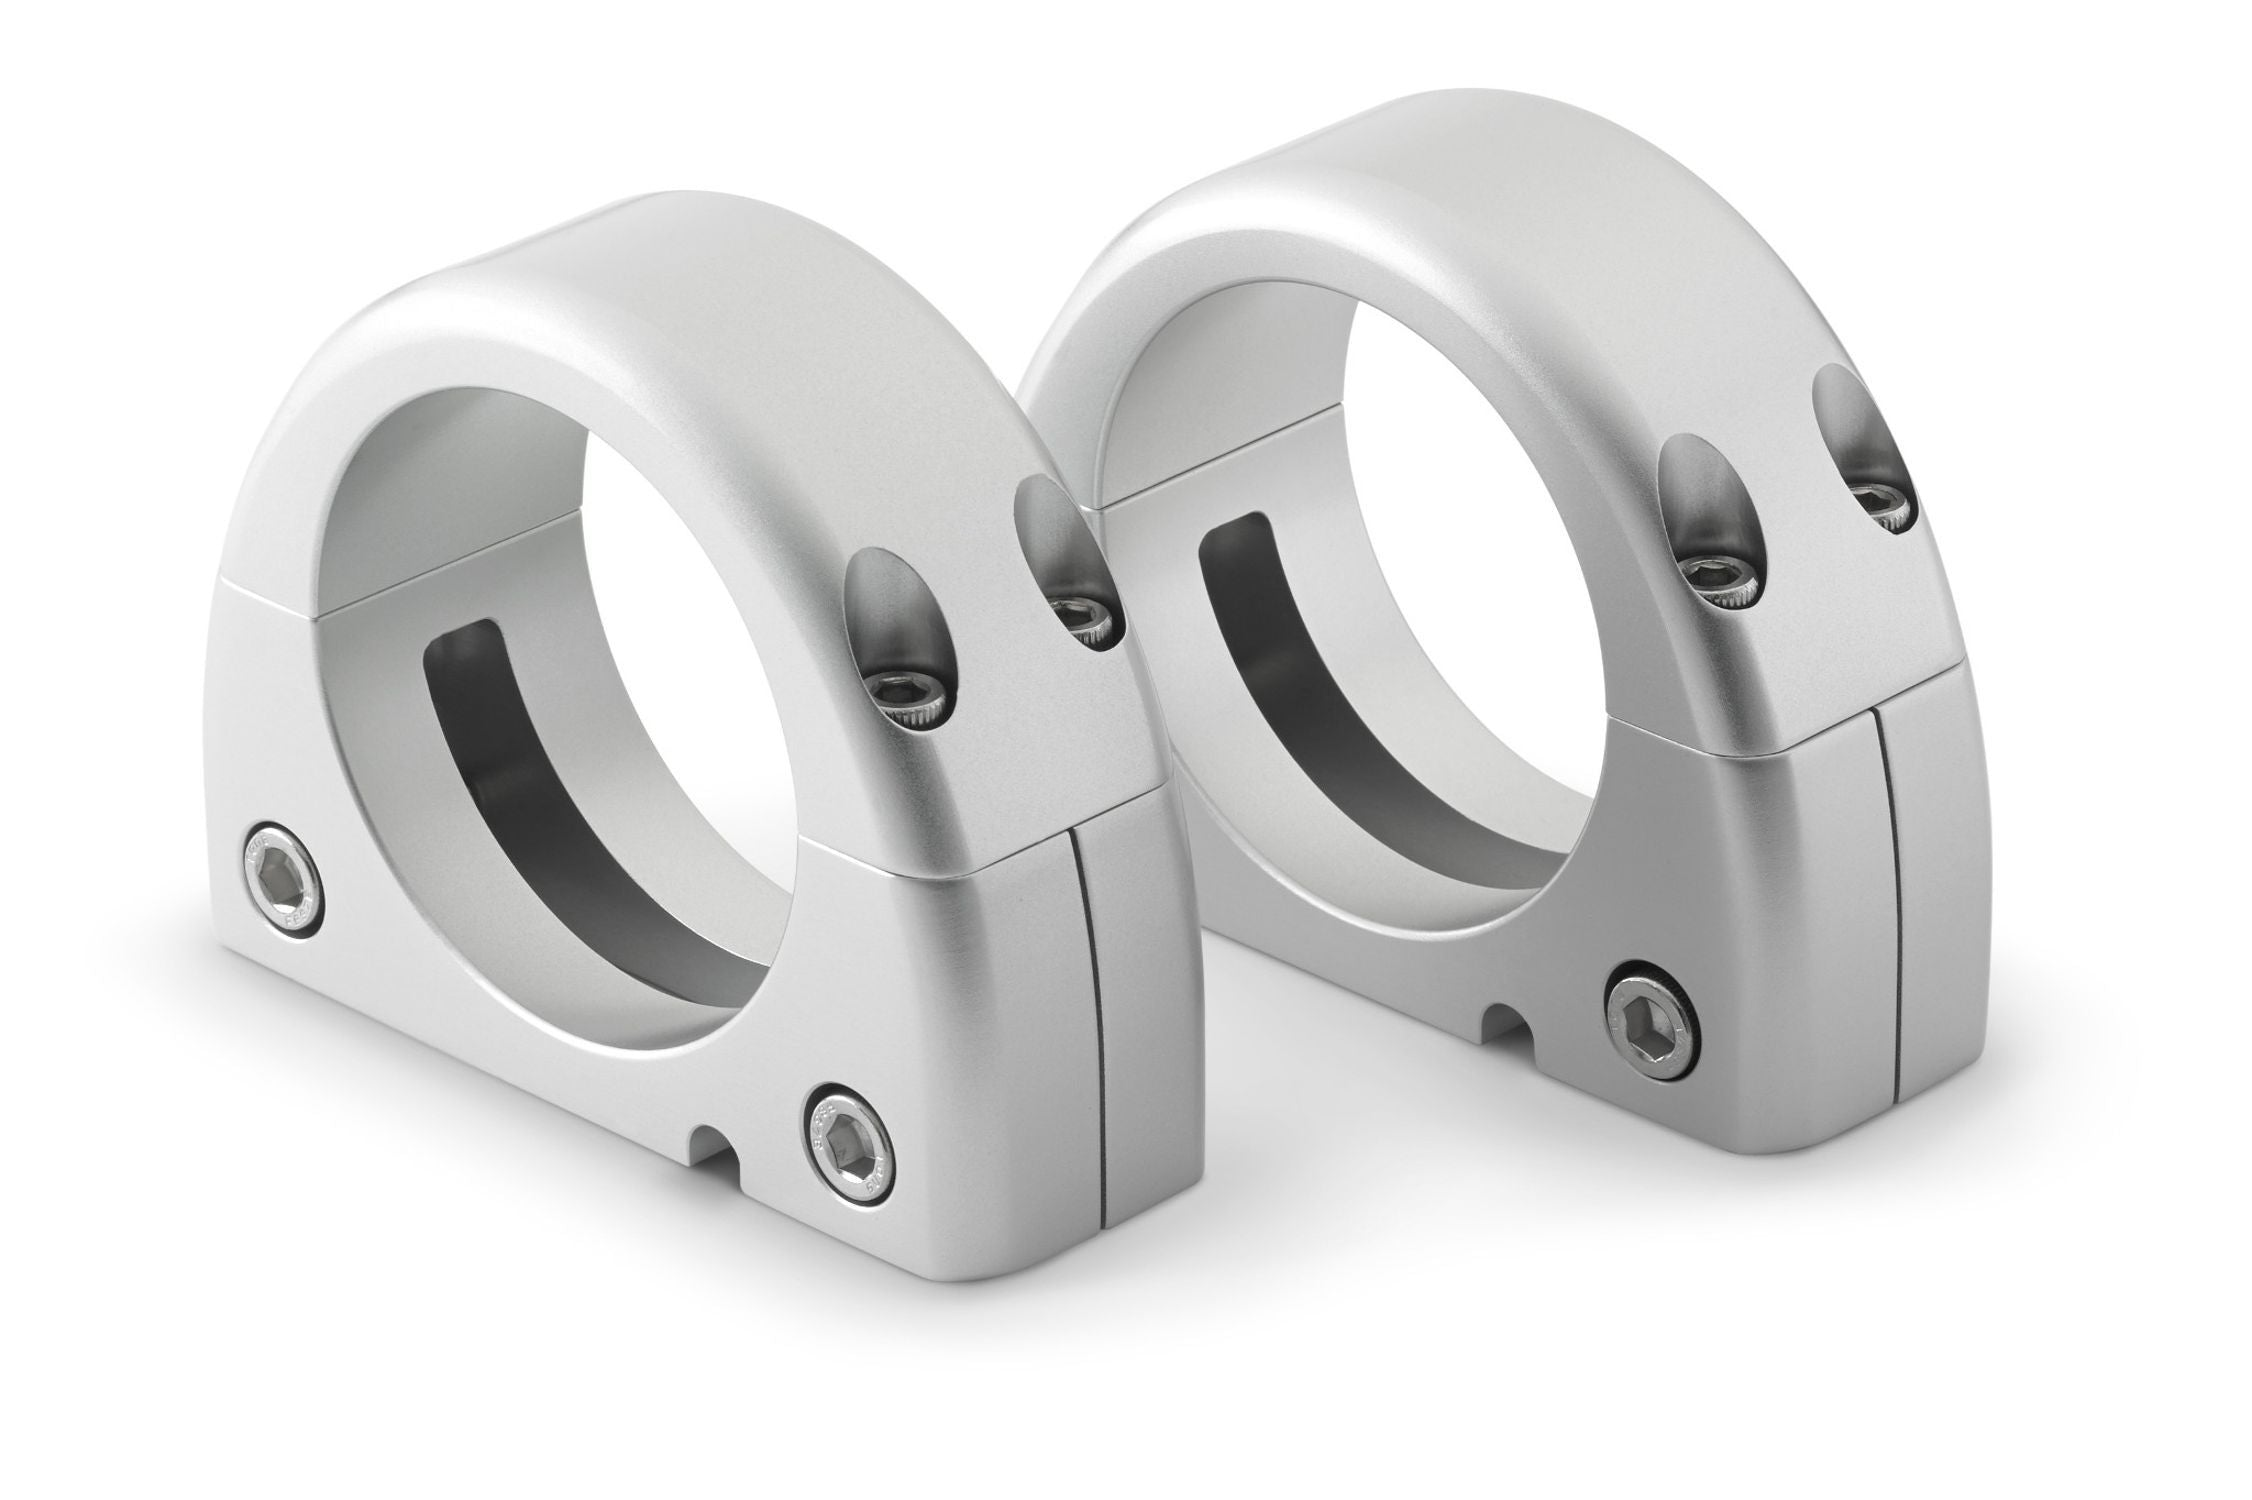 M-MCPv3-3.000 Mounting Clamp Pair